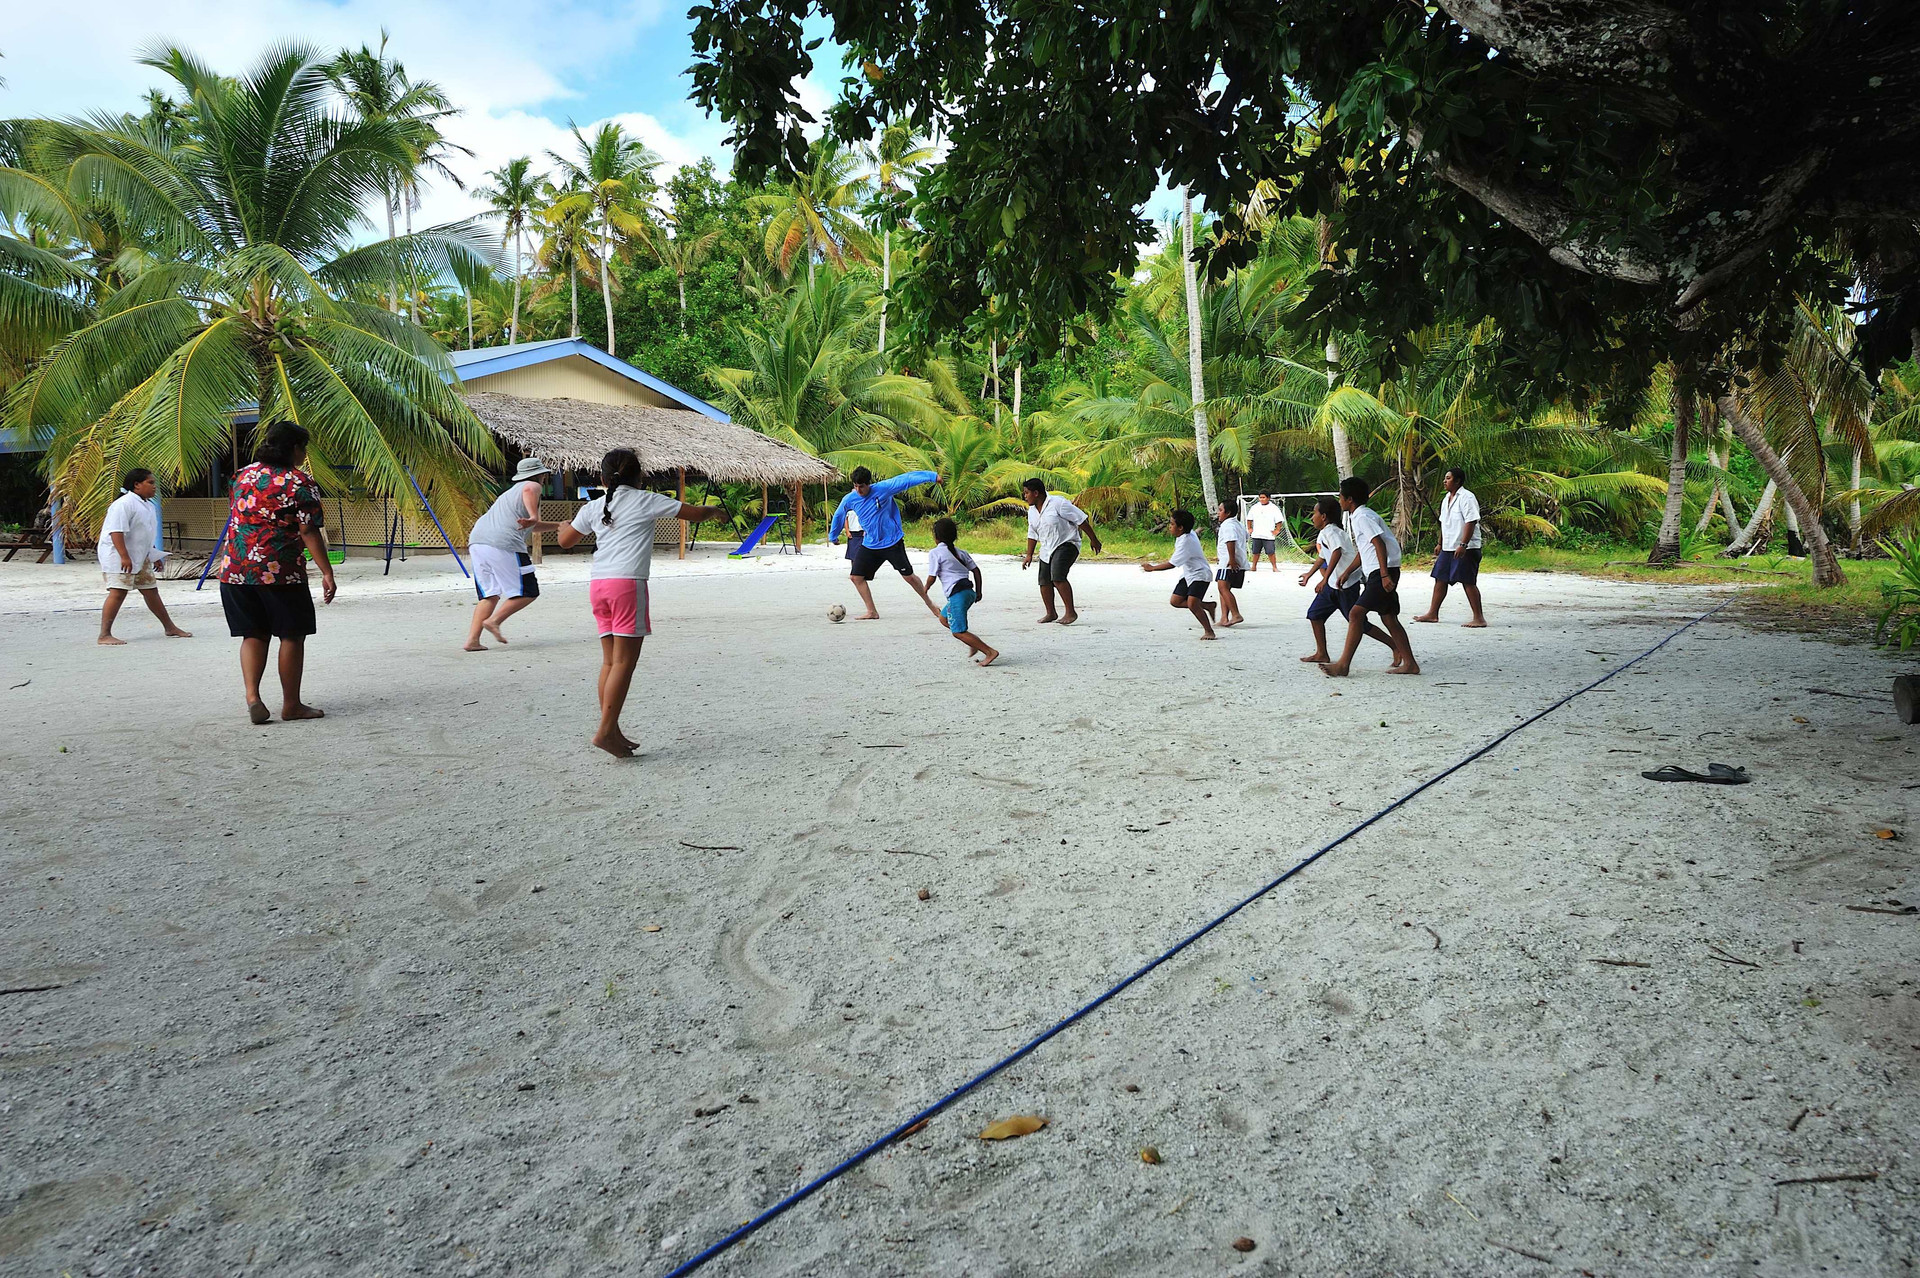 Stephen and Chris Probst playing football with the kids of Palmerston Atoll